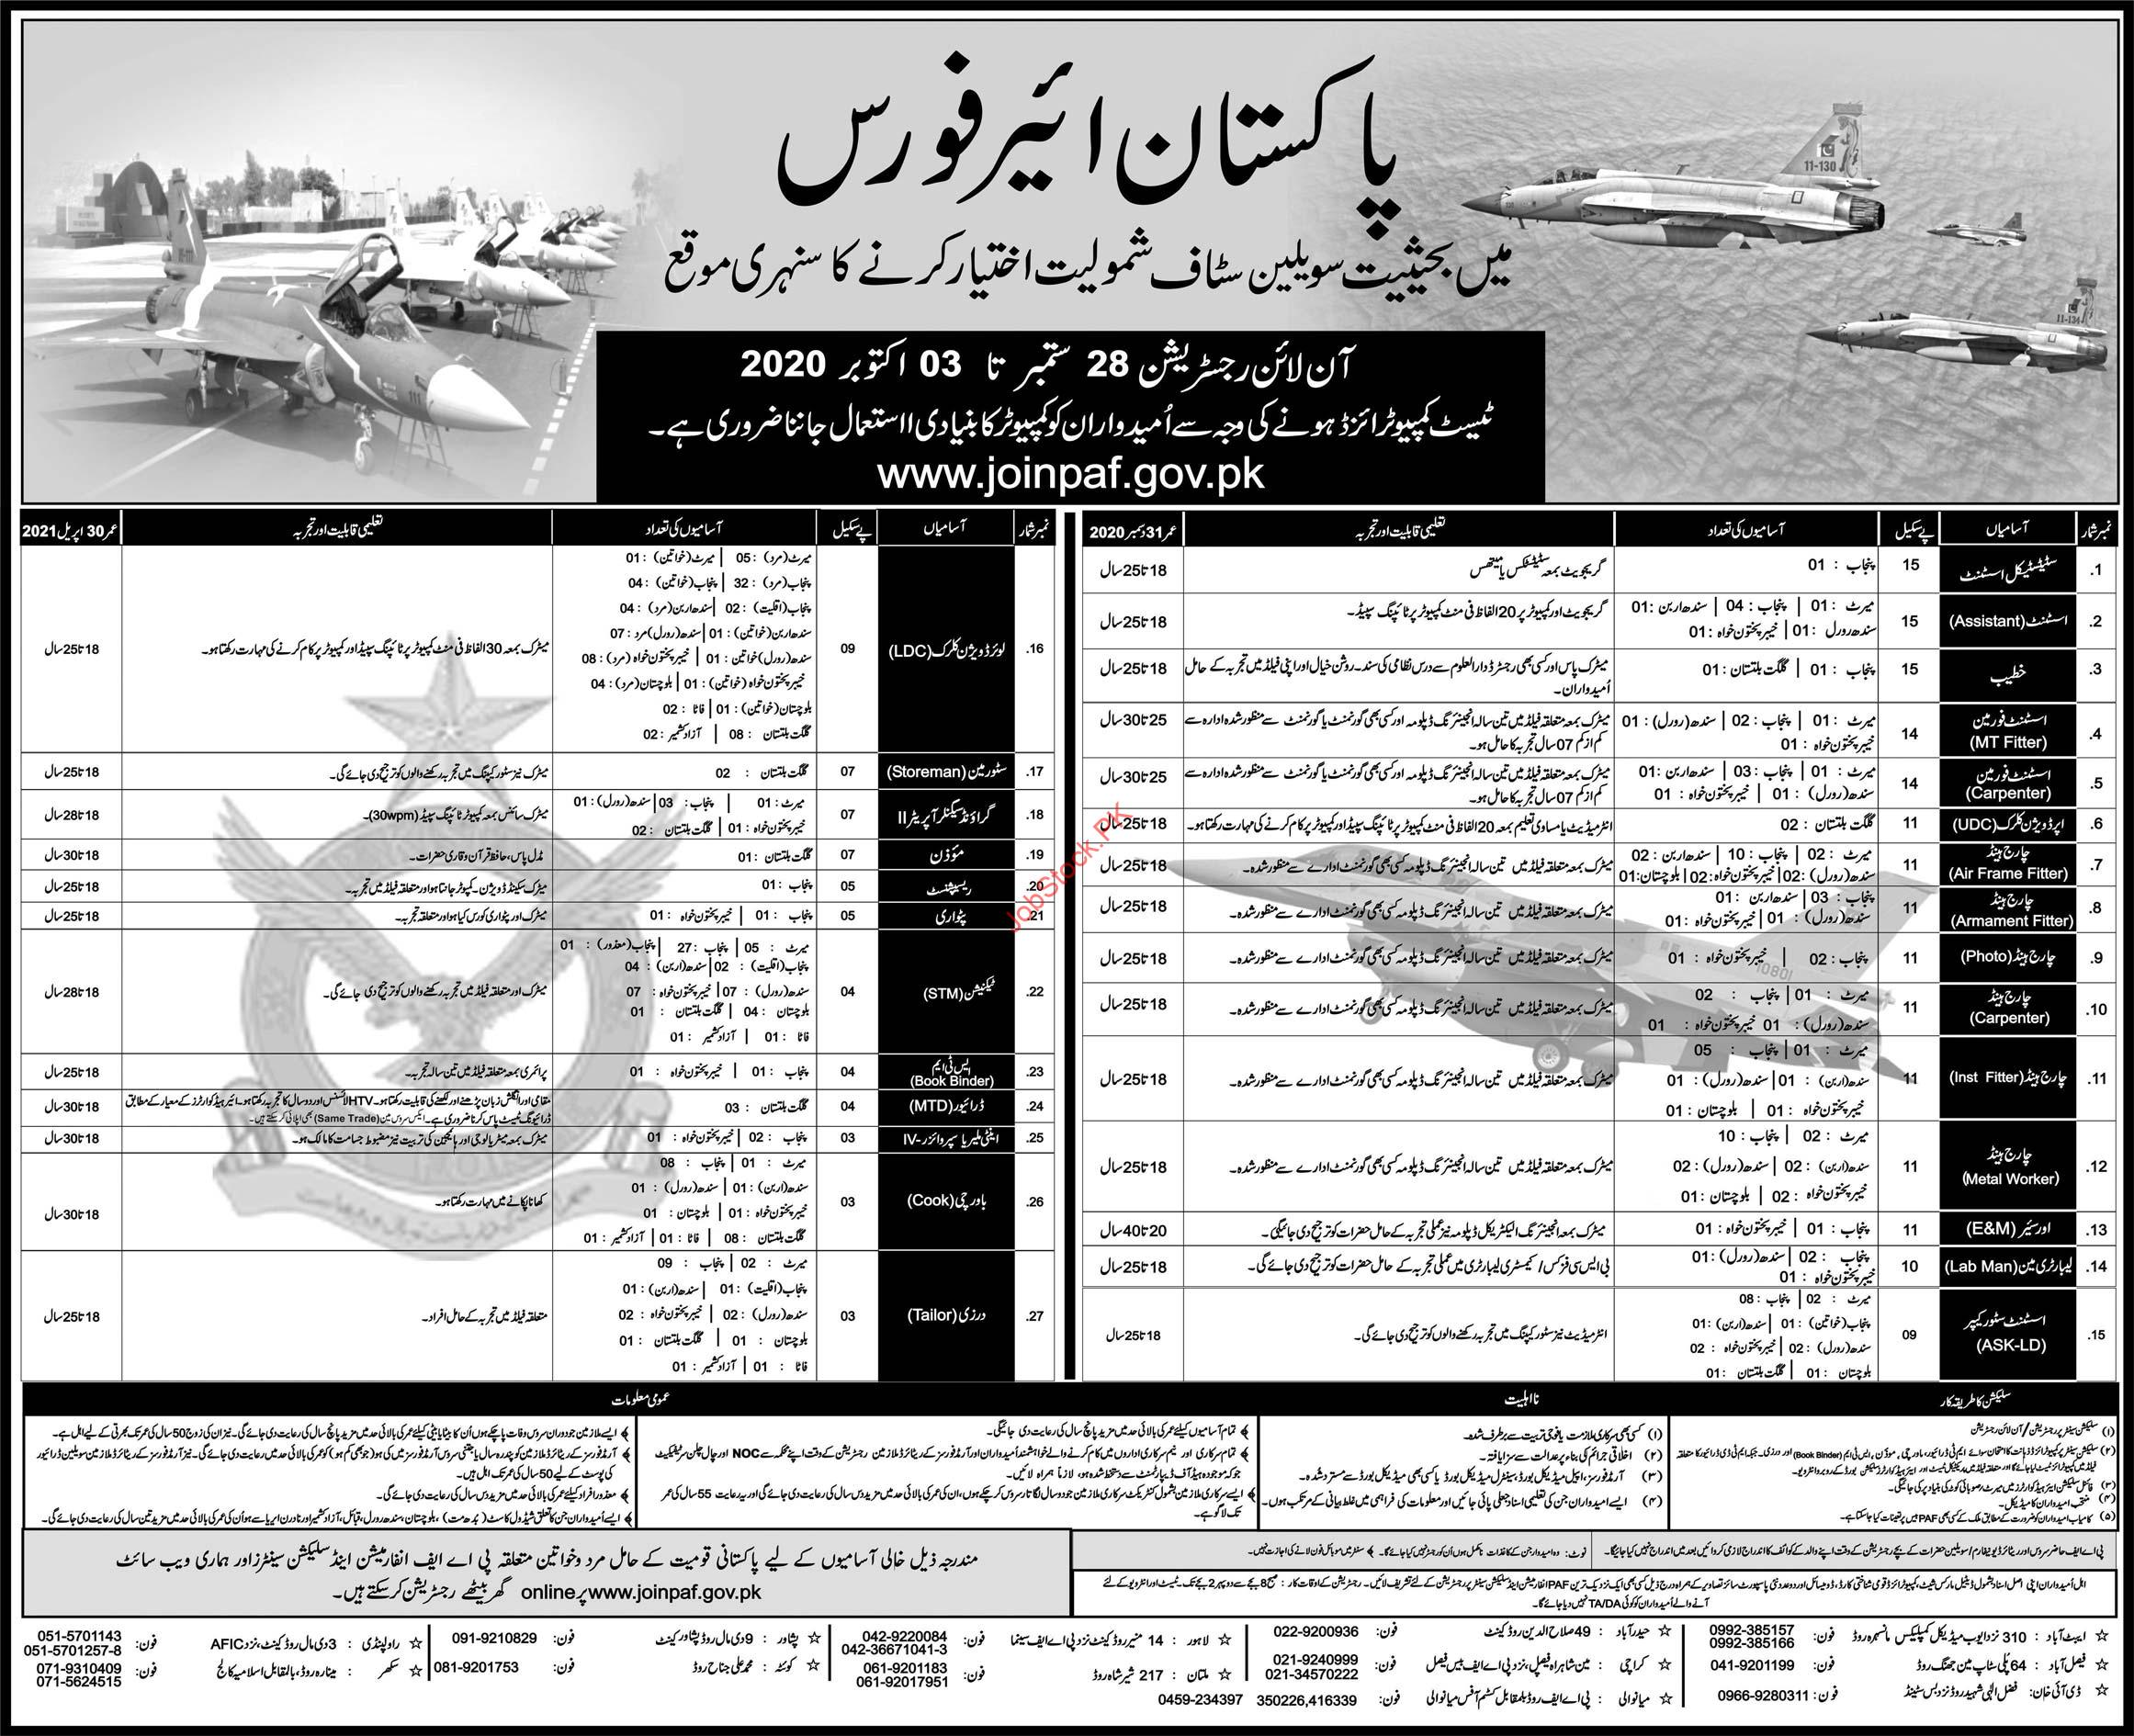 Pakistan Air Force Civilian Jobs In 2020